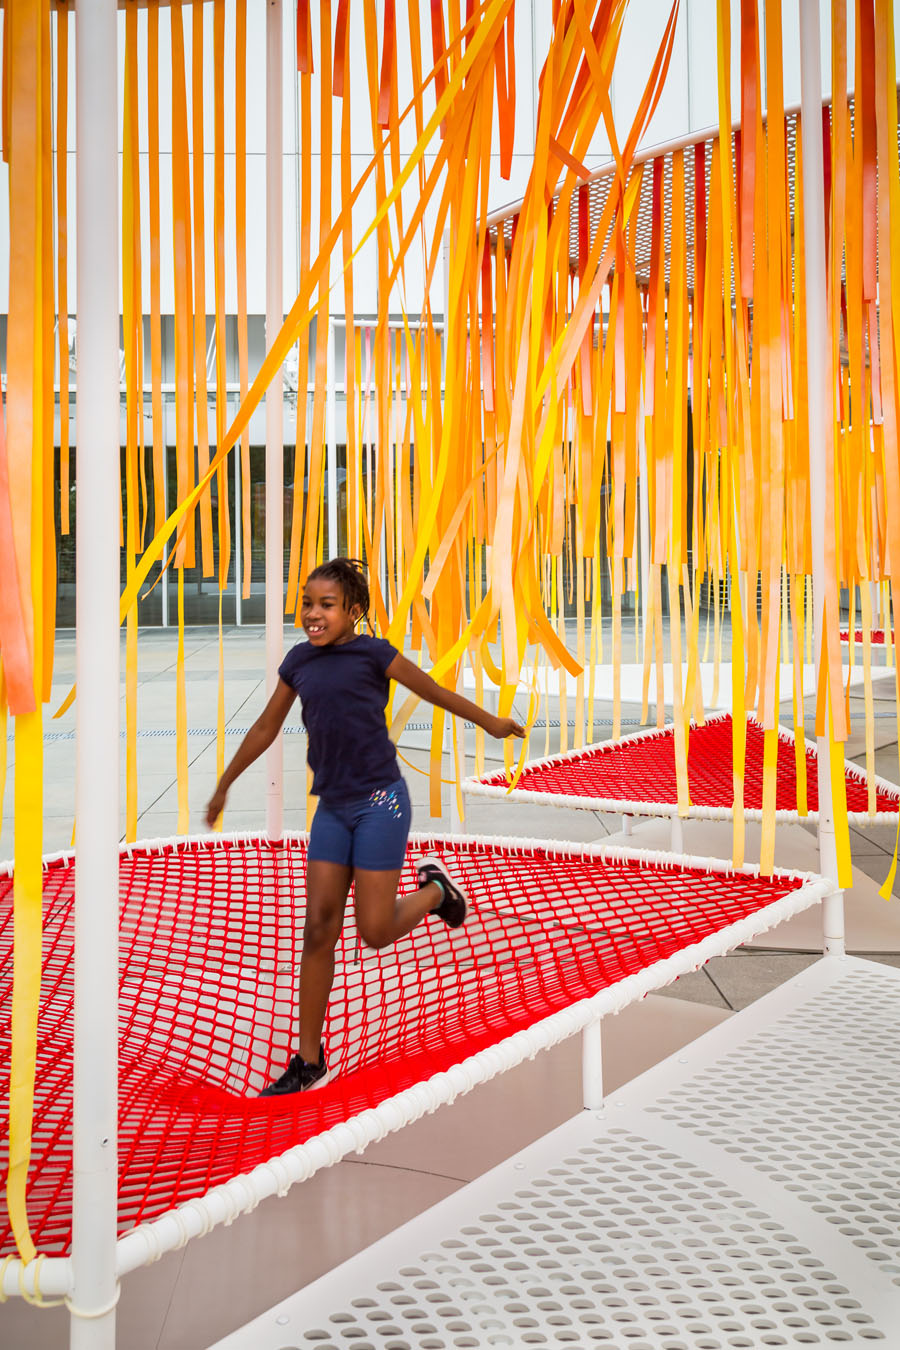 A young girl jumps on a mesh trampoline section of Byrony Robert's Outside the Lines installation at the High Museum in Atlanta, Georgia.